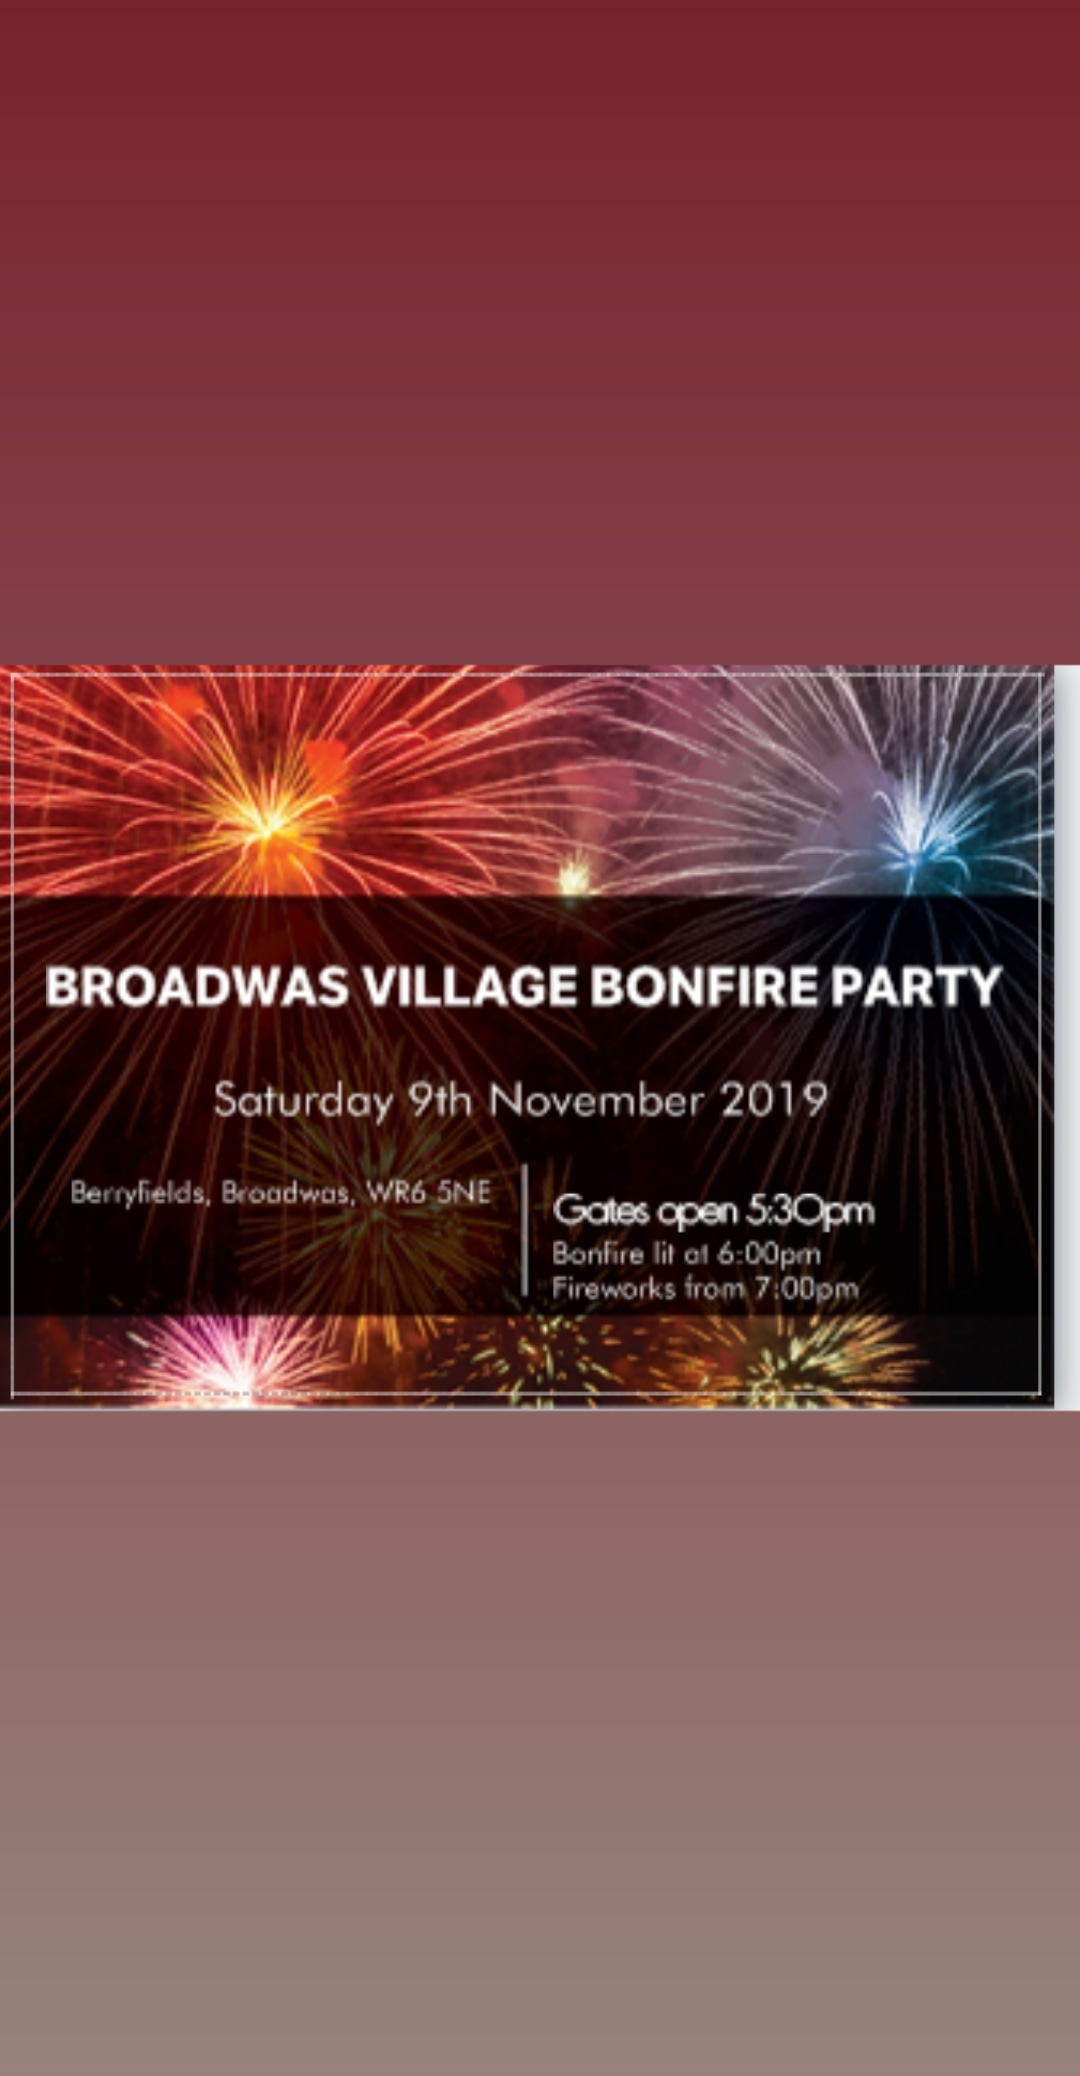 Broadwas Village Bonfire Party